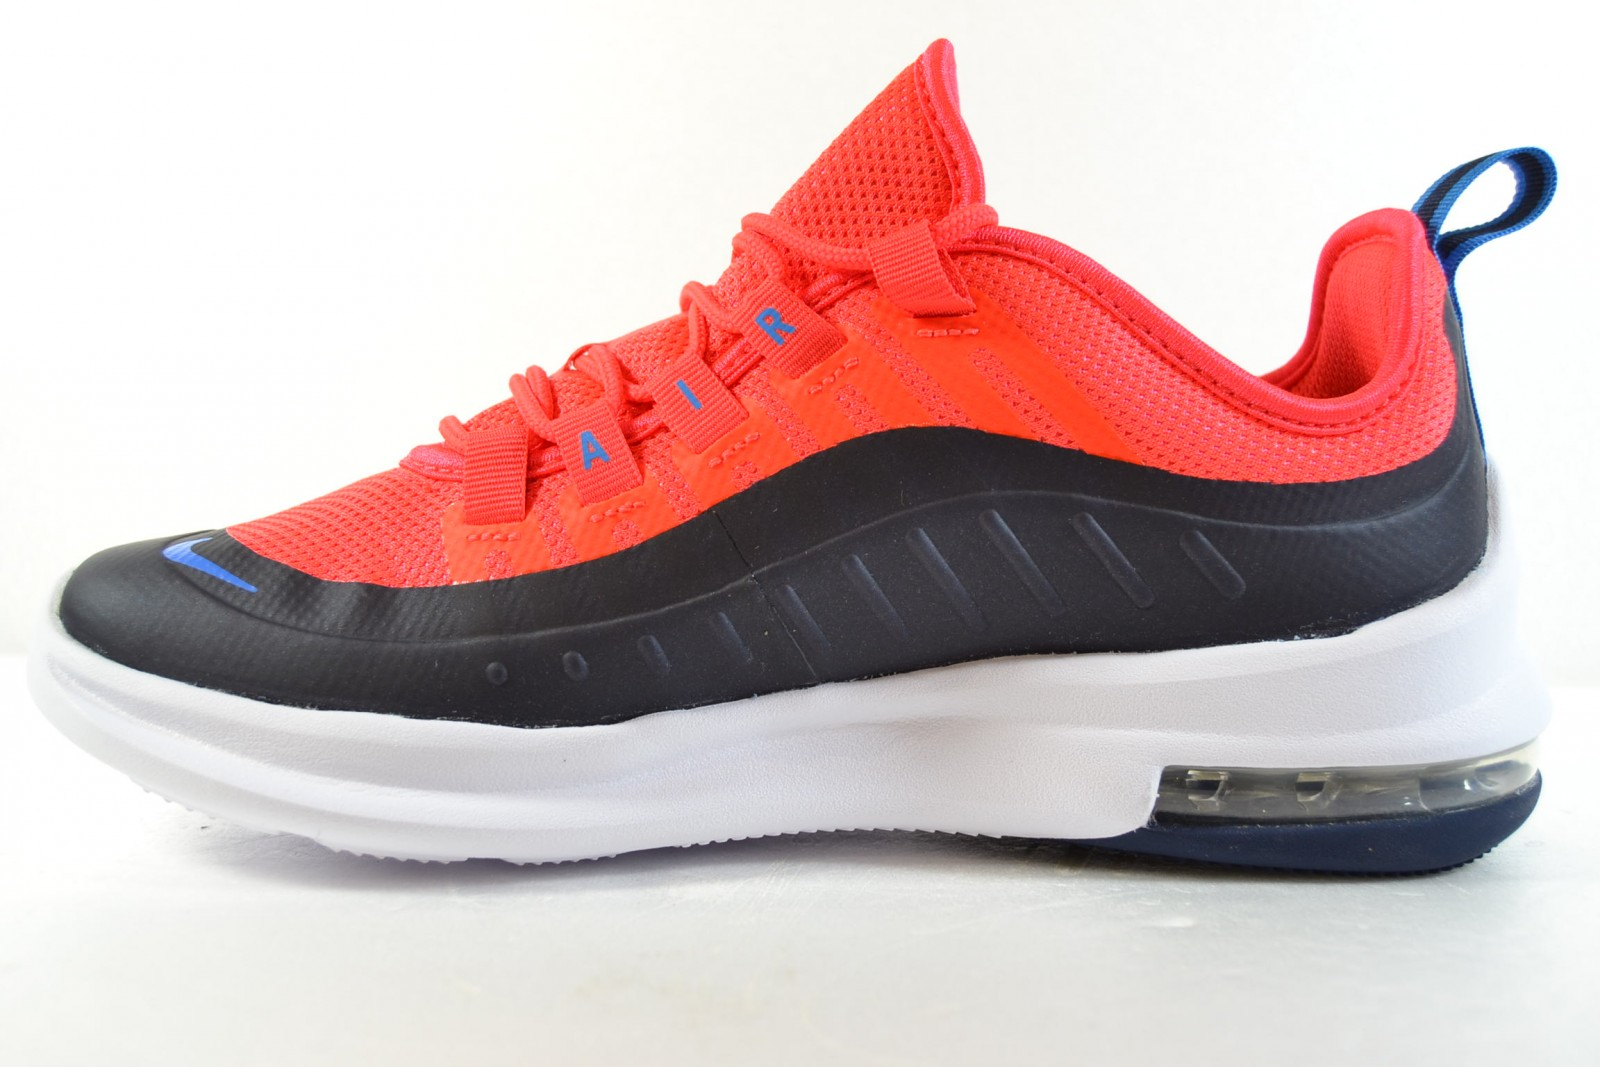 0b4b395e0a7b NIKE AIR MAX AXIS (GS) - Roba SHOES SRL